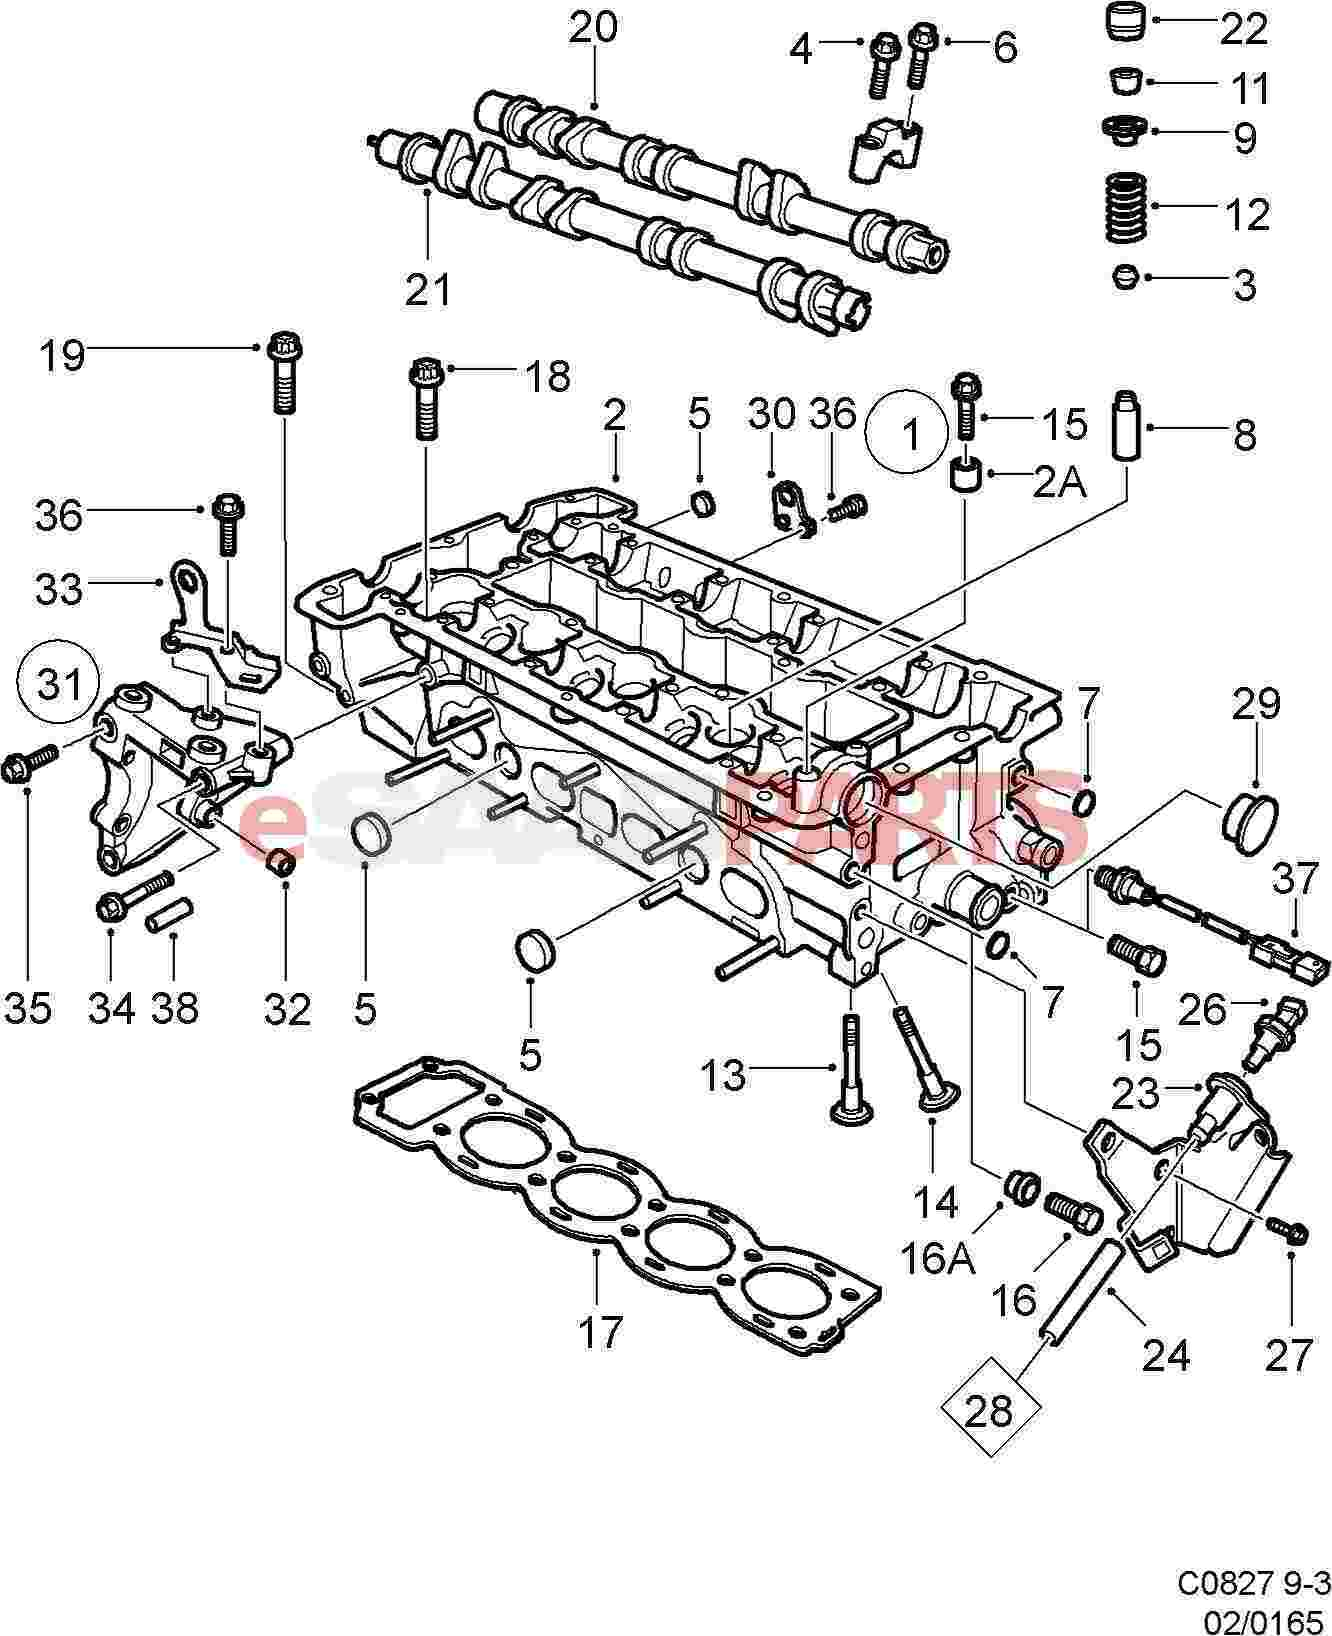 saab 9000 aero engine diagram html